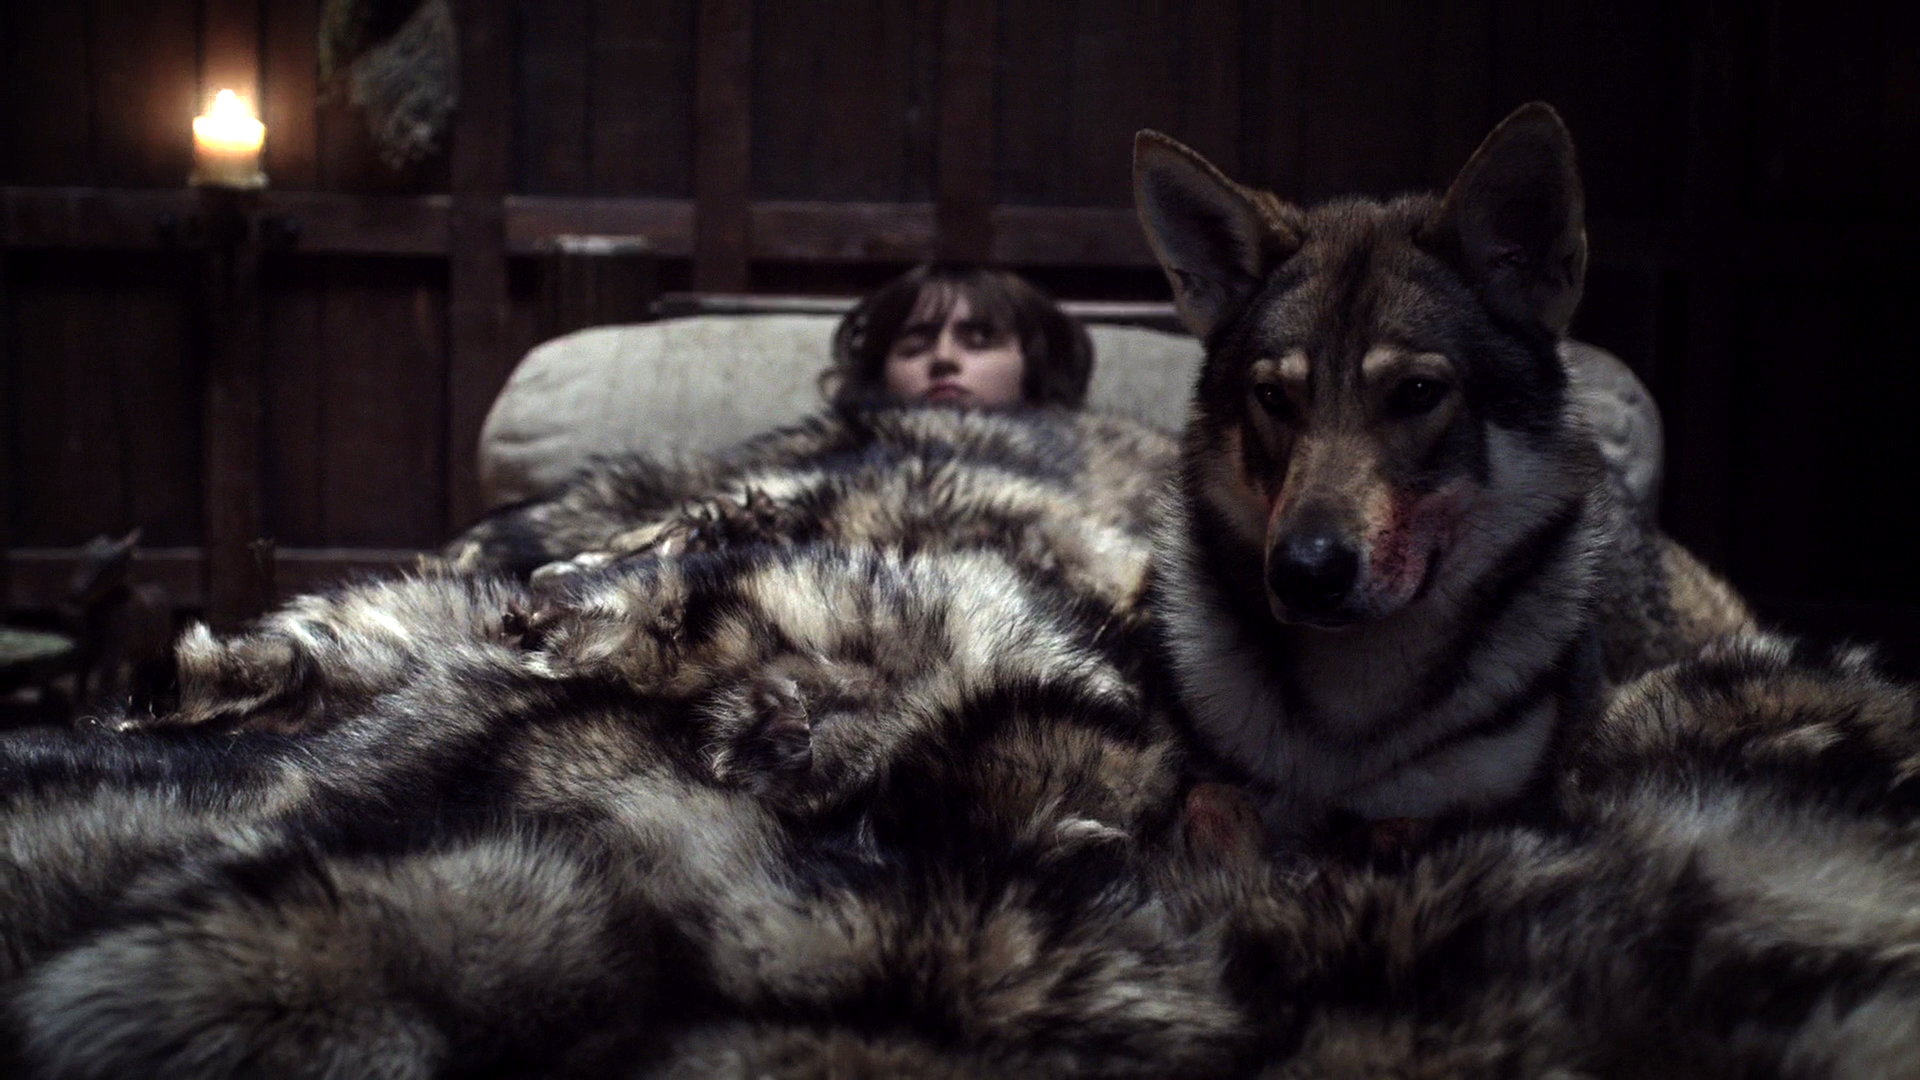 Summer protects Bran from the assassin sent to kill him.